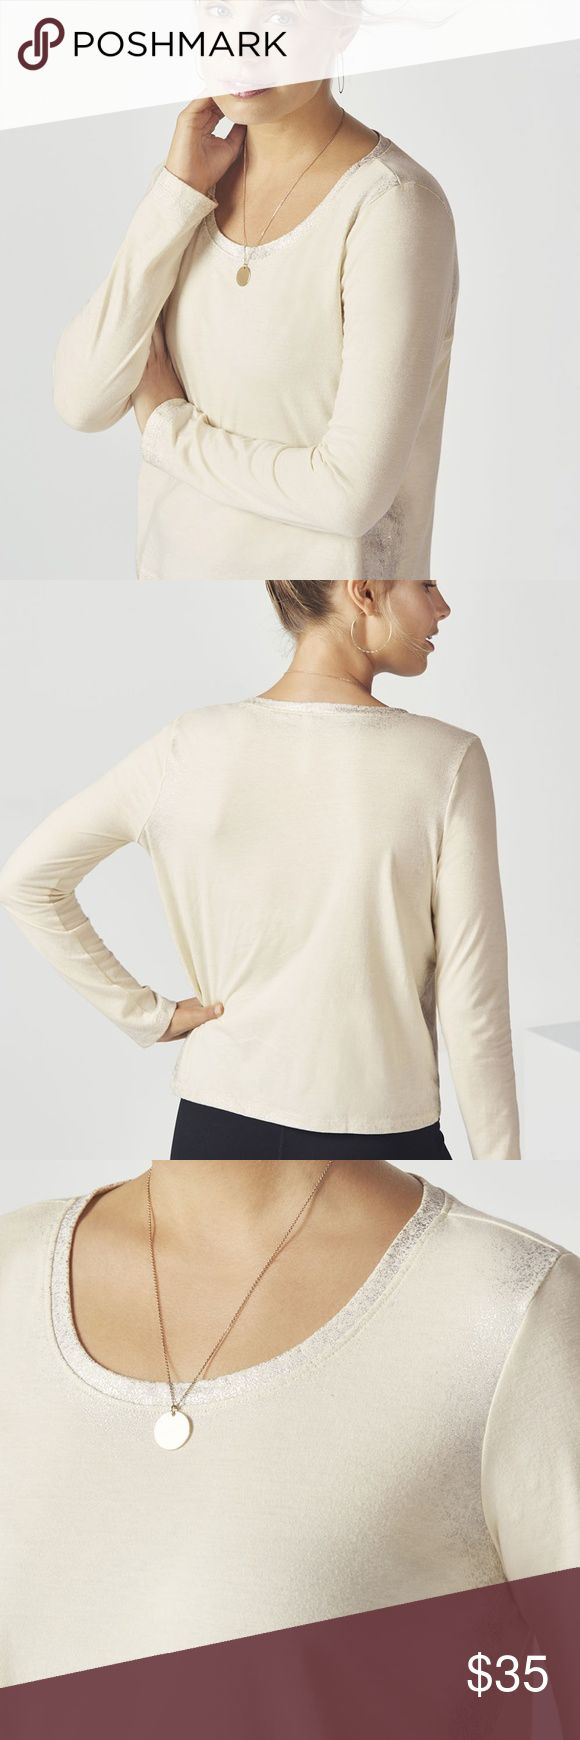 Fabletics Long Sleeve Laurel Top NWT Get your glow on from home or on the go in a comfy long sleeve tee with a standout shimmer effect along the edges. Fit: Regular Fit Length: Semi-Cropped Styling: Semi-Cropped Length, Soft Jersey Fabric, Distressed Foil Print on Seams and Hem Fabric: Cotton Jersey (A luxe cotton knit, washed with silicone for an ultra-soft finish.) Fabric Content: 50% Polyester/50% Cotton XL | 14-16B: 42-44 W:35-38  H:44-46 Fabletics Tops Tees - Long Sleeve